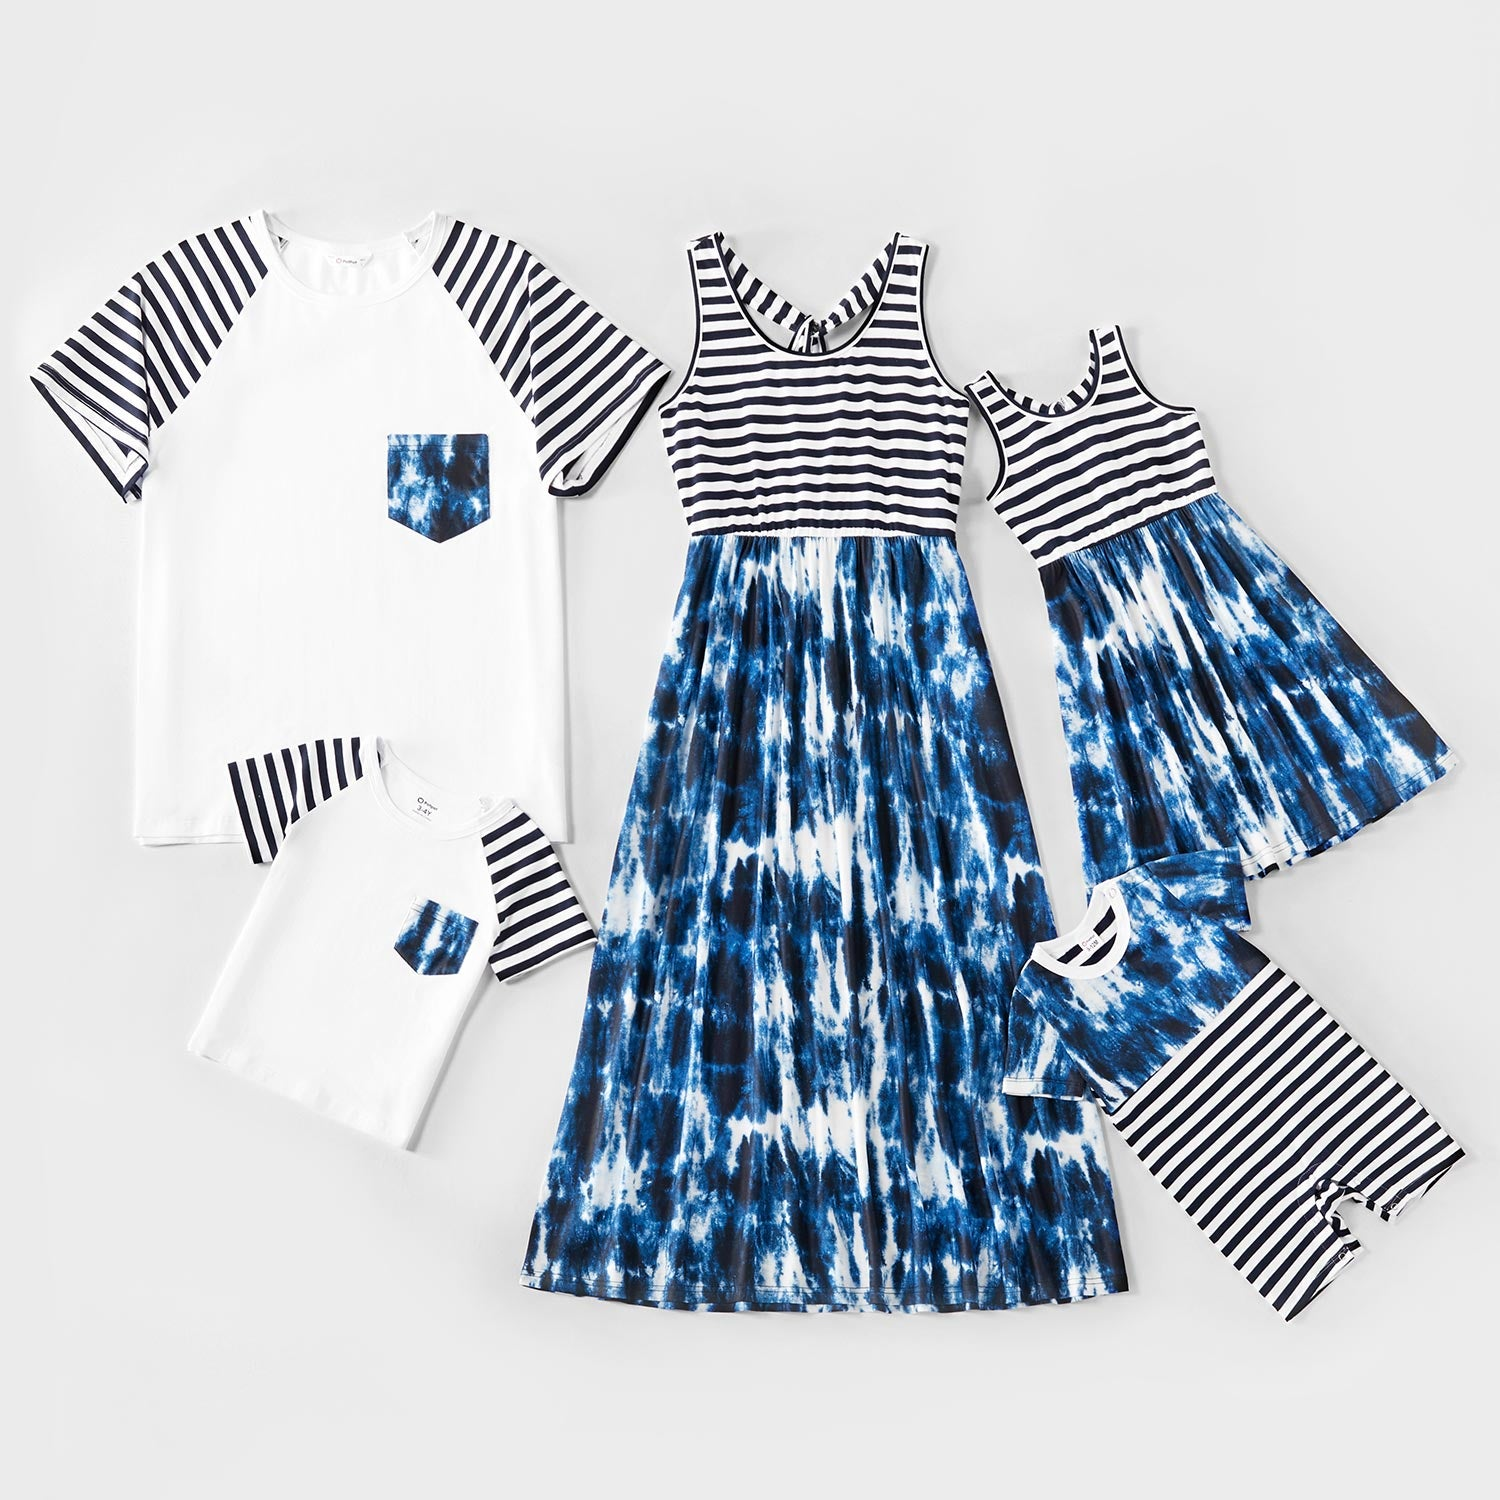 Mosaic Family Matching Stripe Tie-Dye Tank Dresses Tees for Dad-Mom-Boy-Girl-Baby